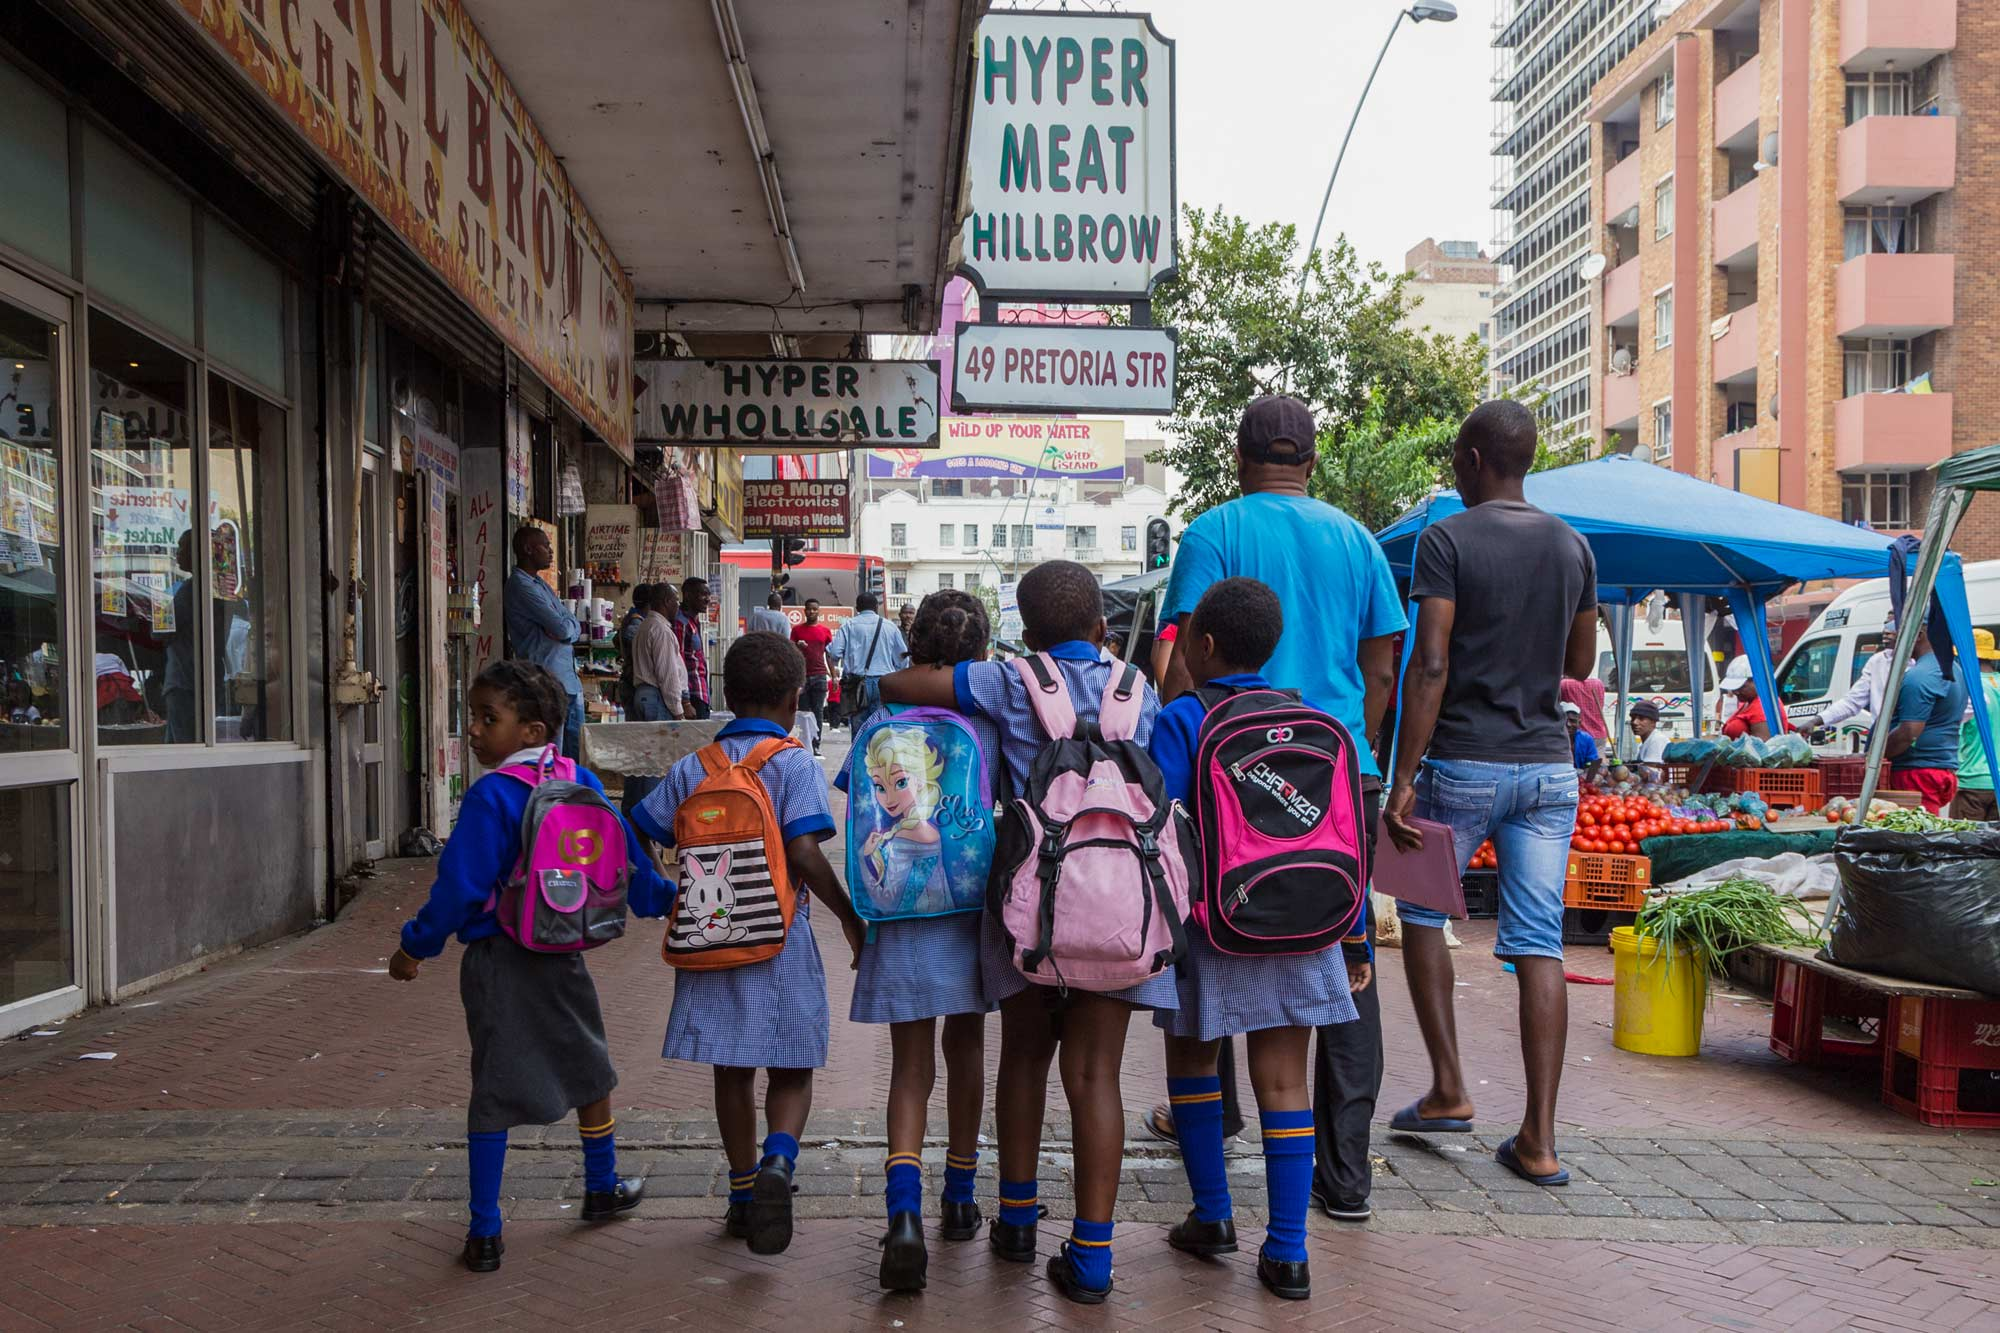 In addition to far-flung destinations, many of Mason's photos document daily life on the streets of Johannesburg. (Photo by Heather Mason)